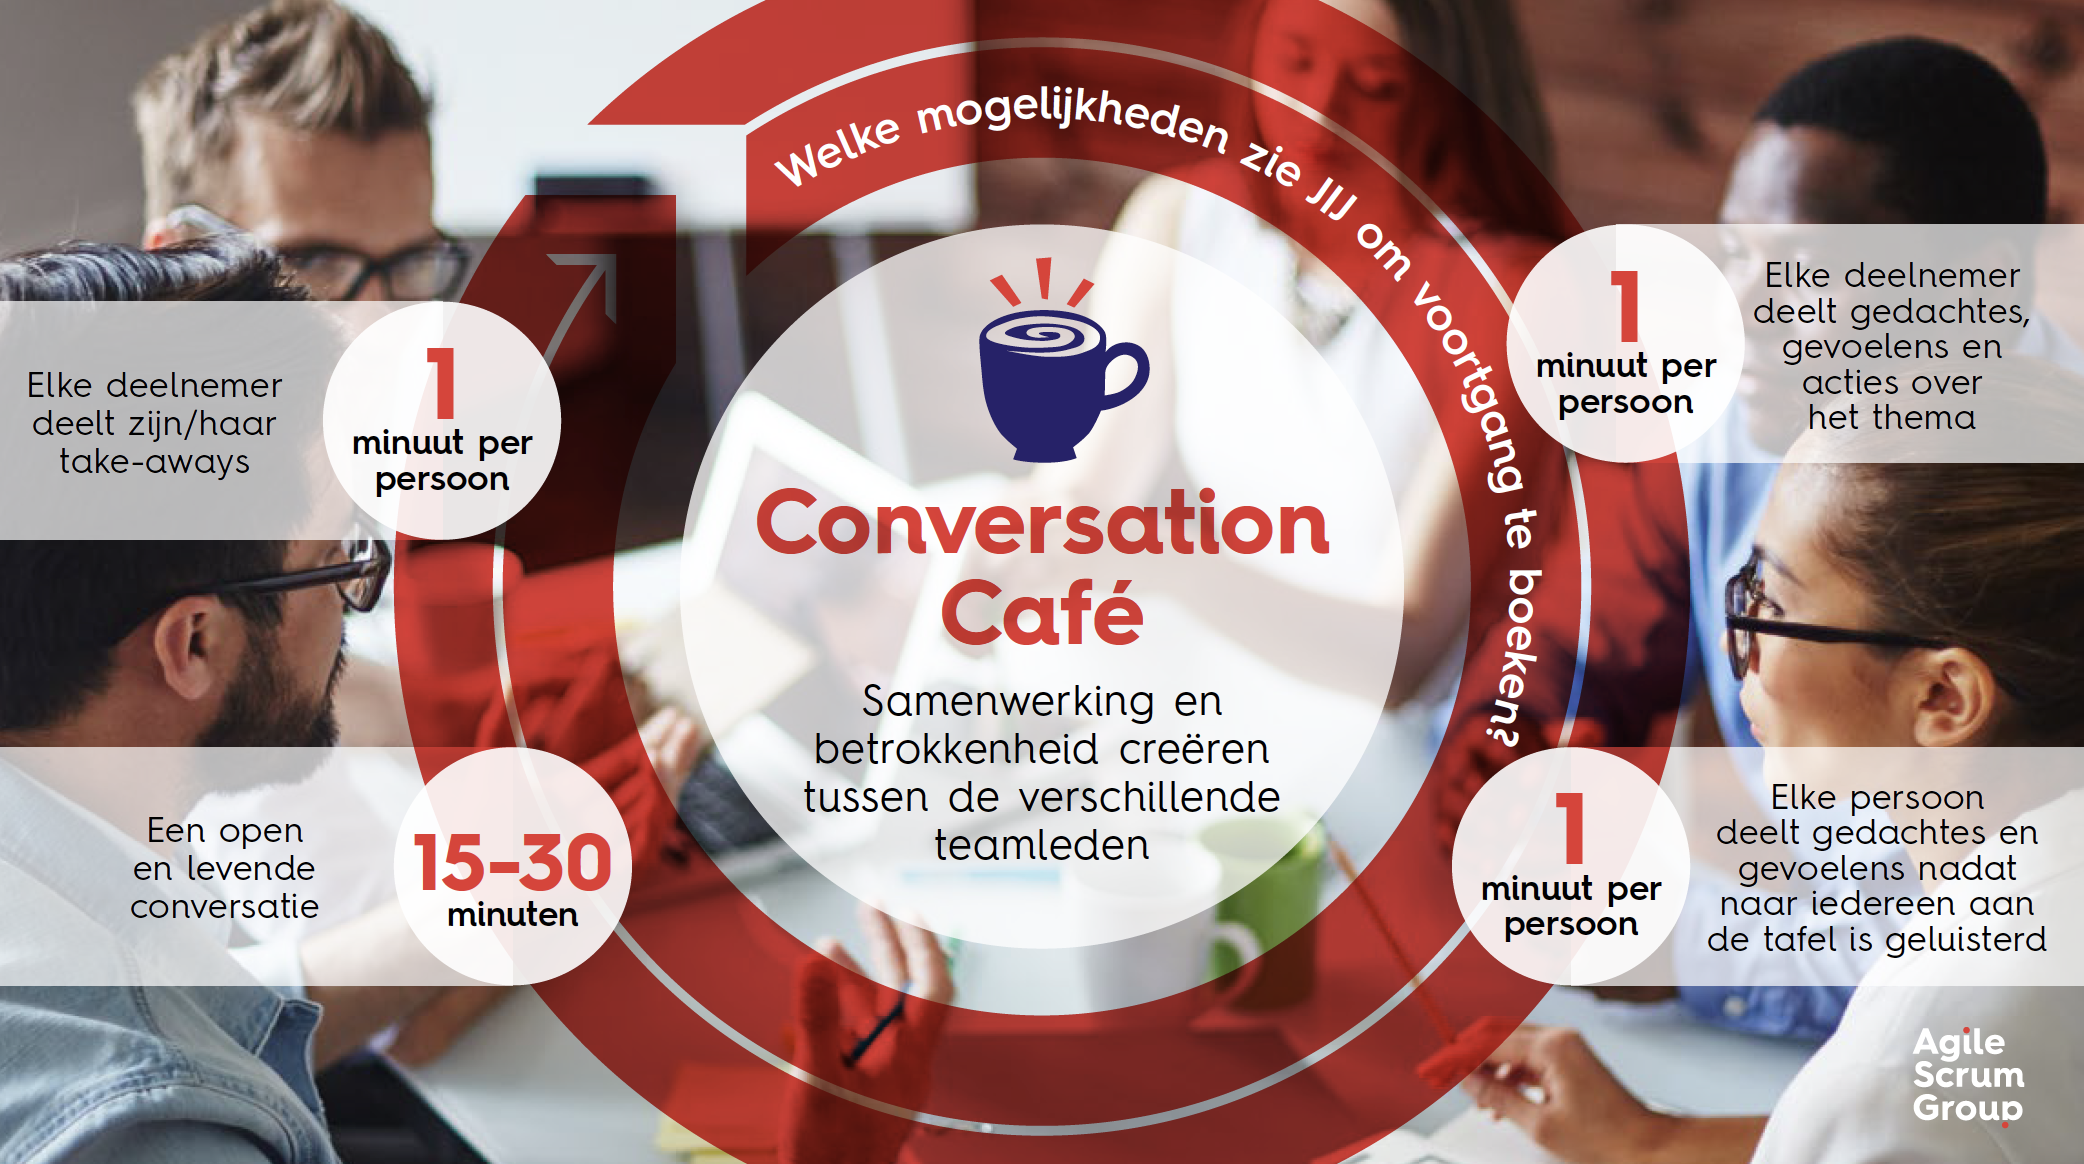 conversation cafe liberating structures